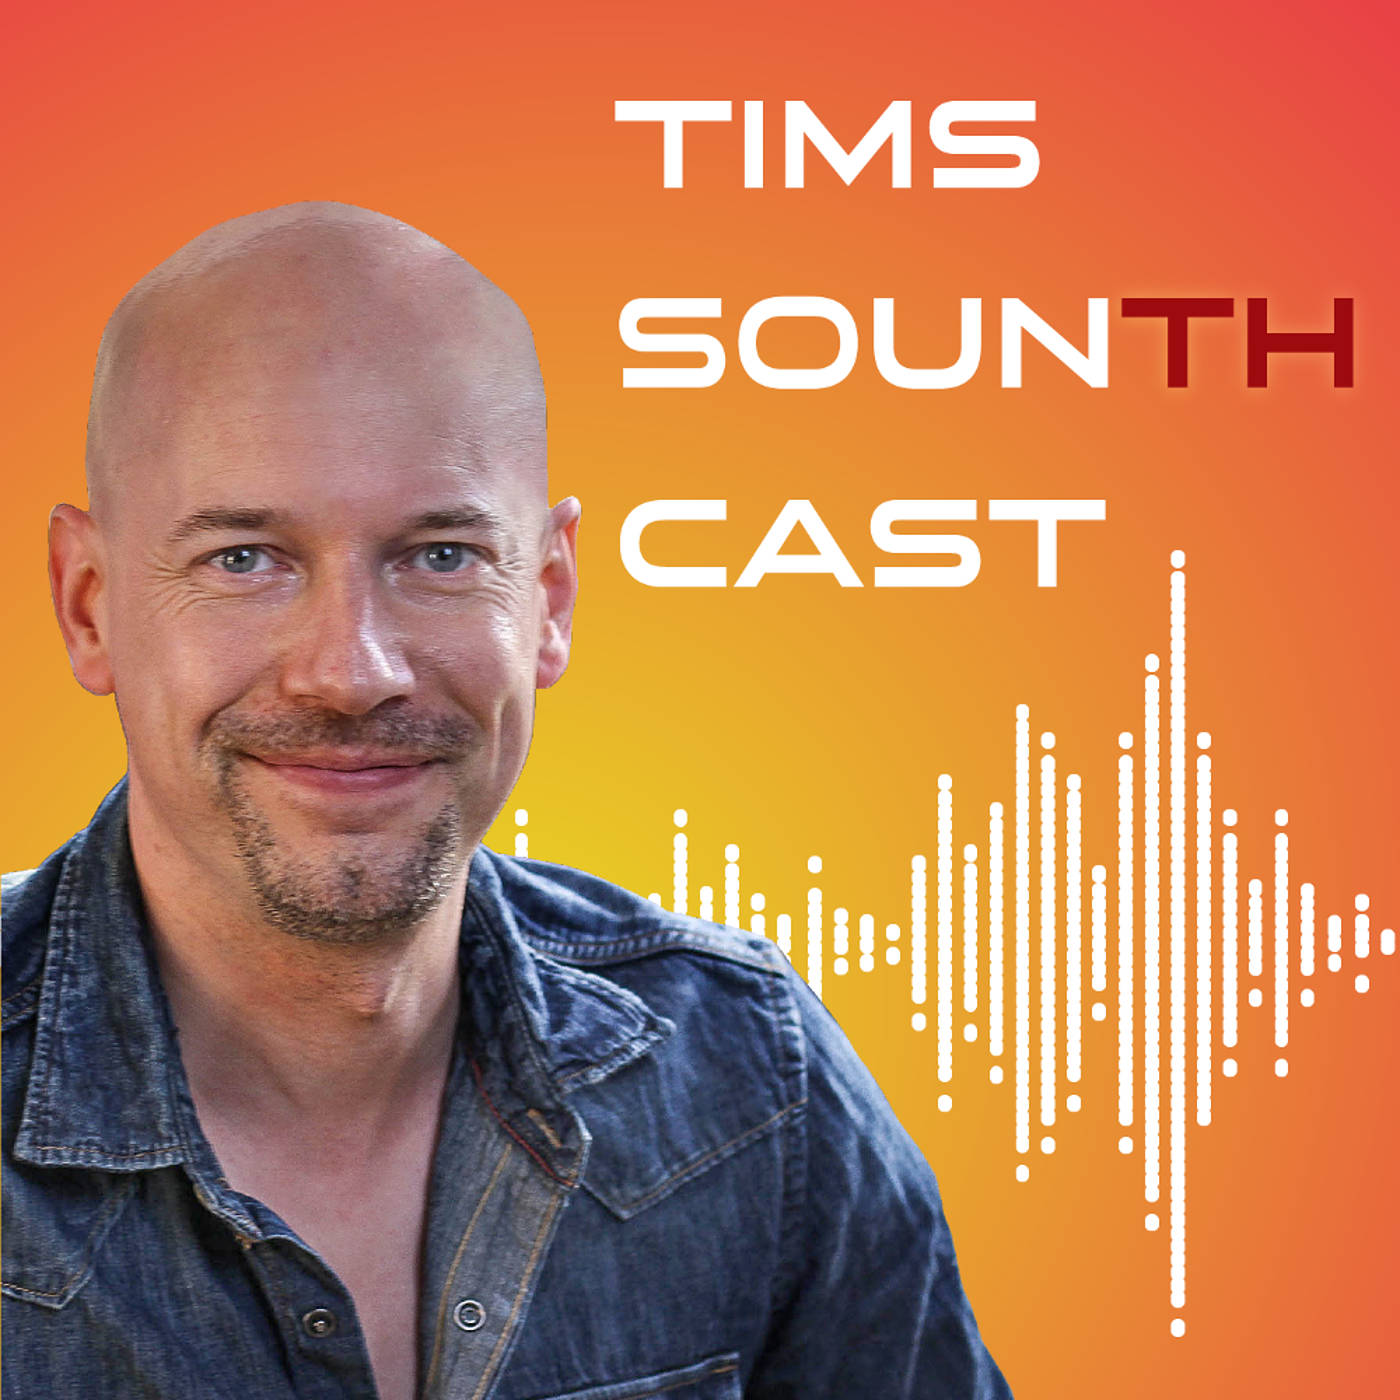 Tims sounTHcast